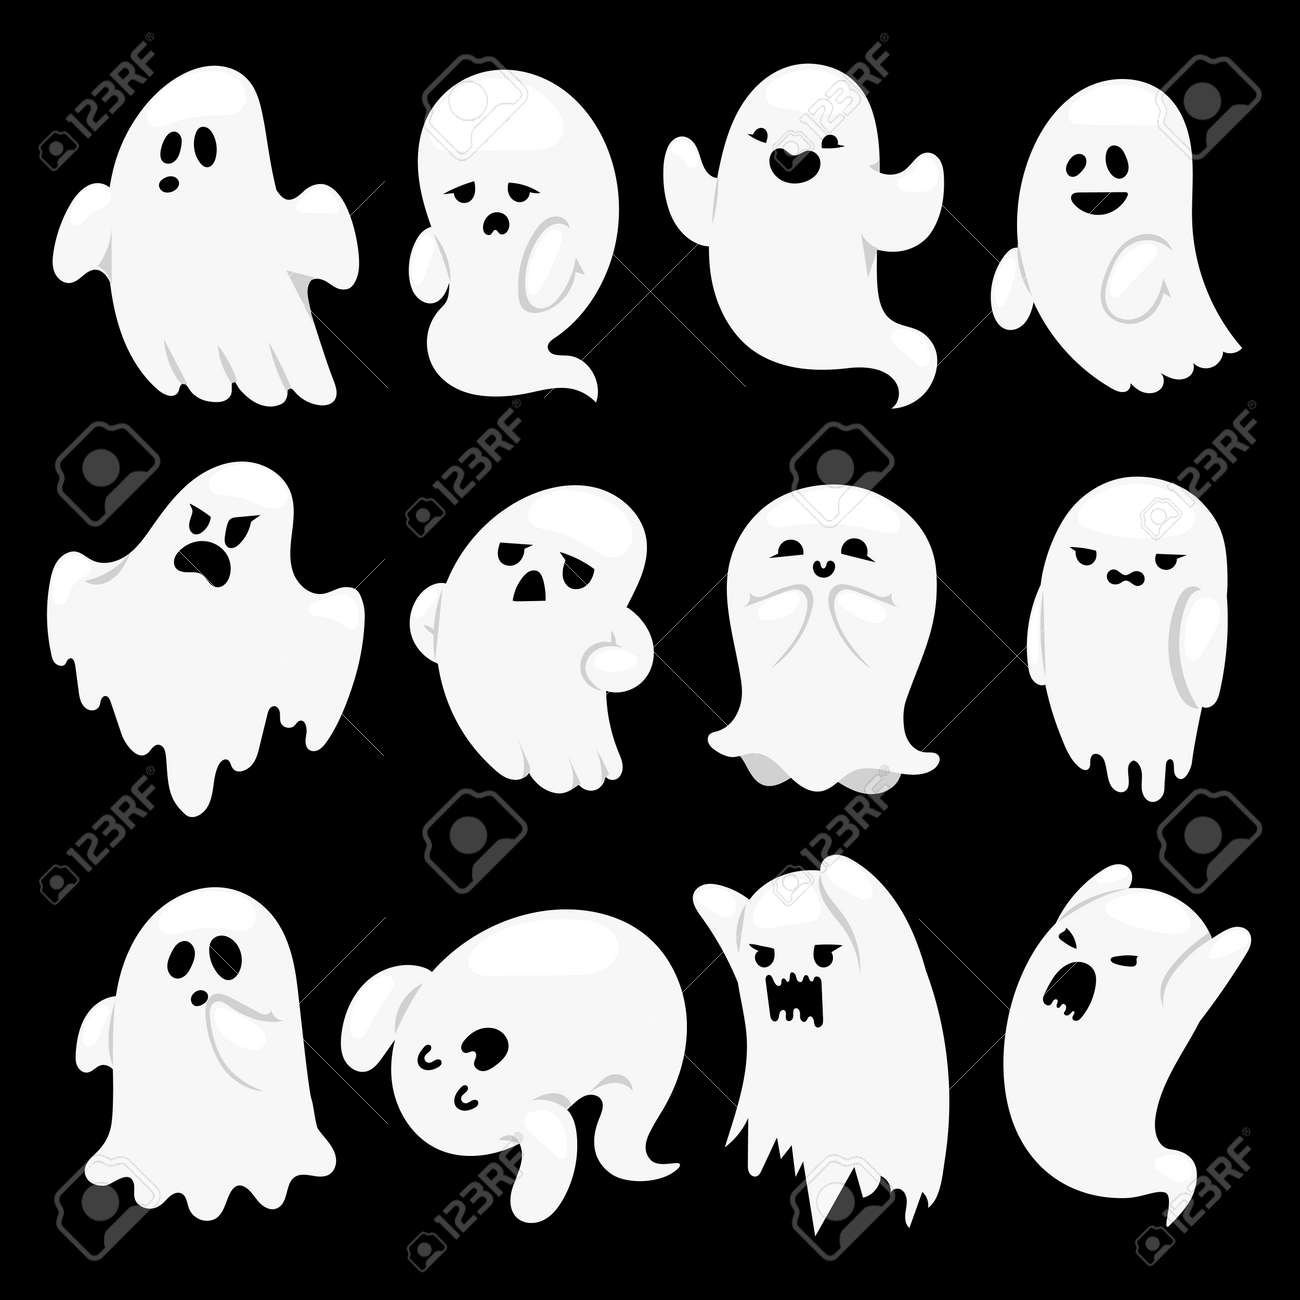 Cartoon spooky ghost character vector set spooky and scary holiday cartoon spooky ghost character vector set spooky and scary holiday monster design ghost character publicscrutiny Images